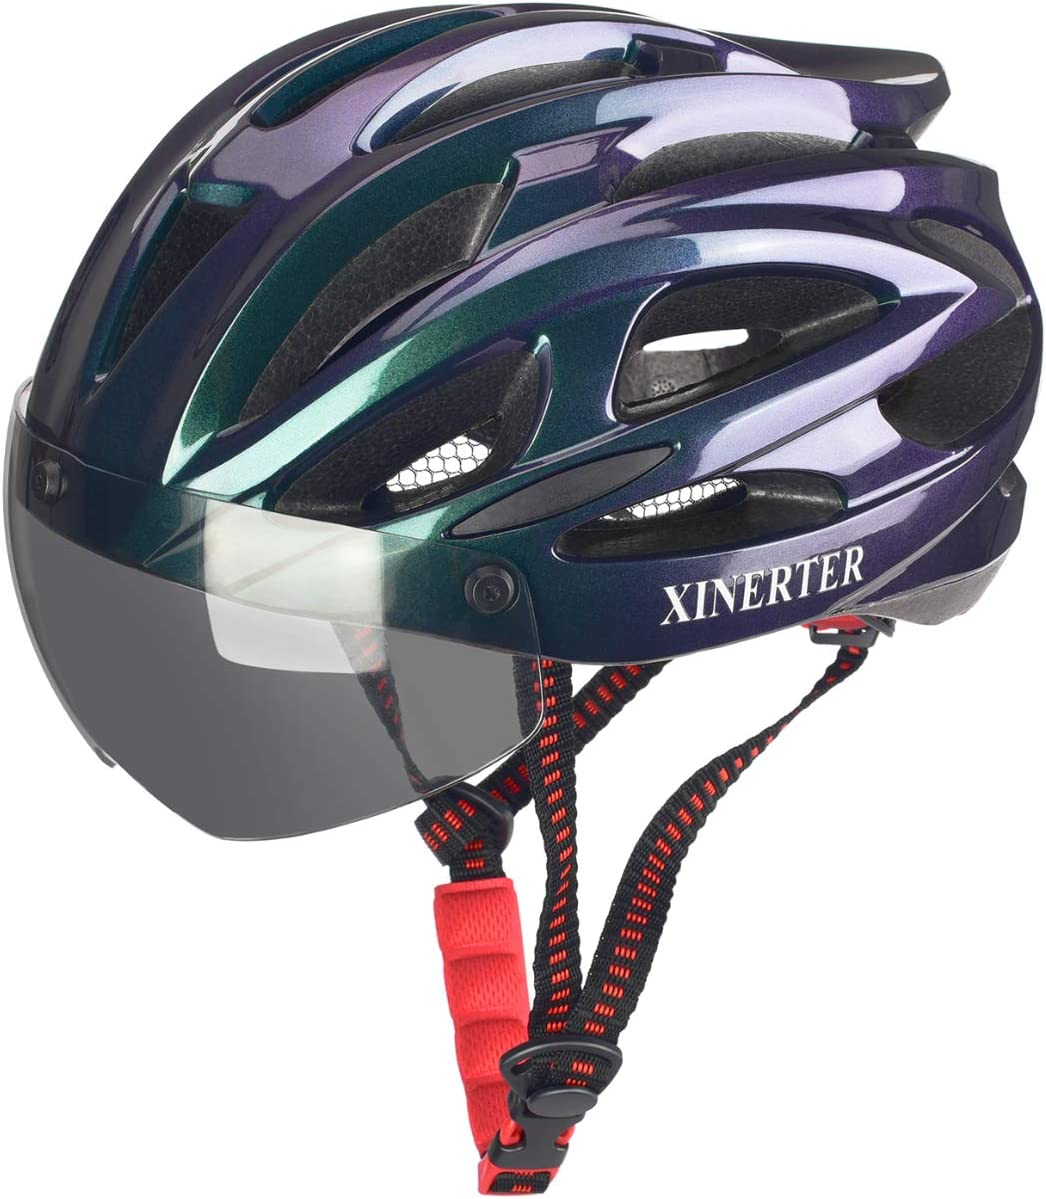 XinerTer Bike Helmet,Mountain Bike Helmets with Detachable Magnetic Goggles,Adjustable Size Road Helmets for Women and Men.CPSC/CE Certified Bicycle Helmets